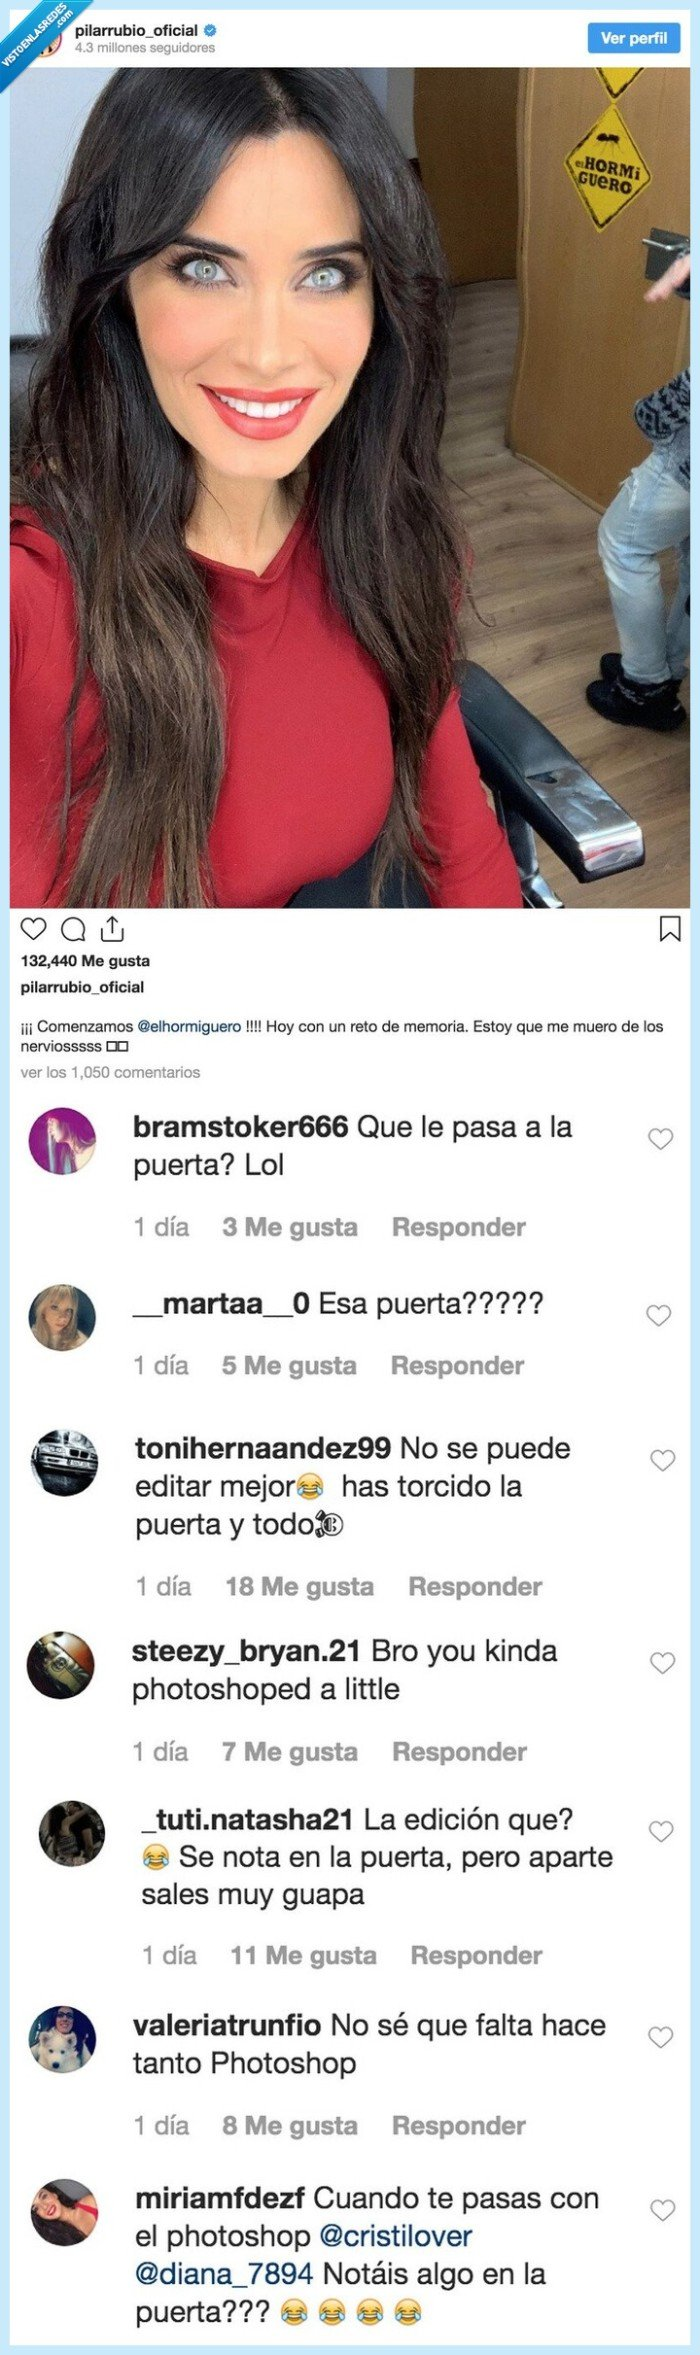 error,instagram,photoshop,pilar rubio,puerta